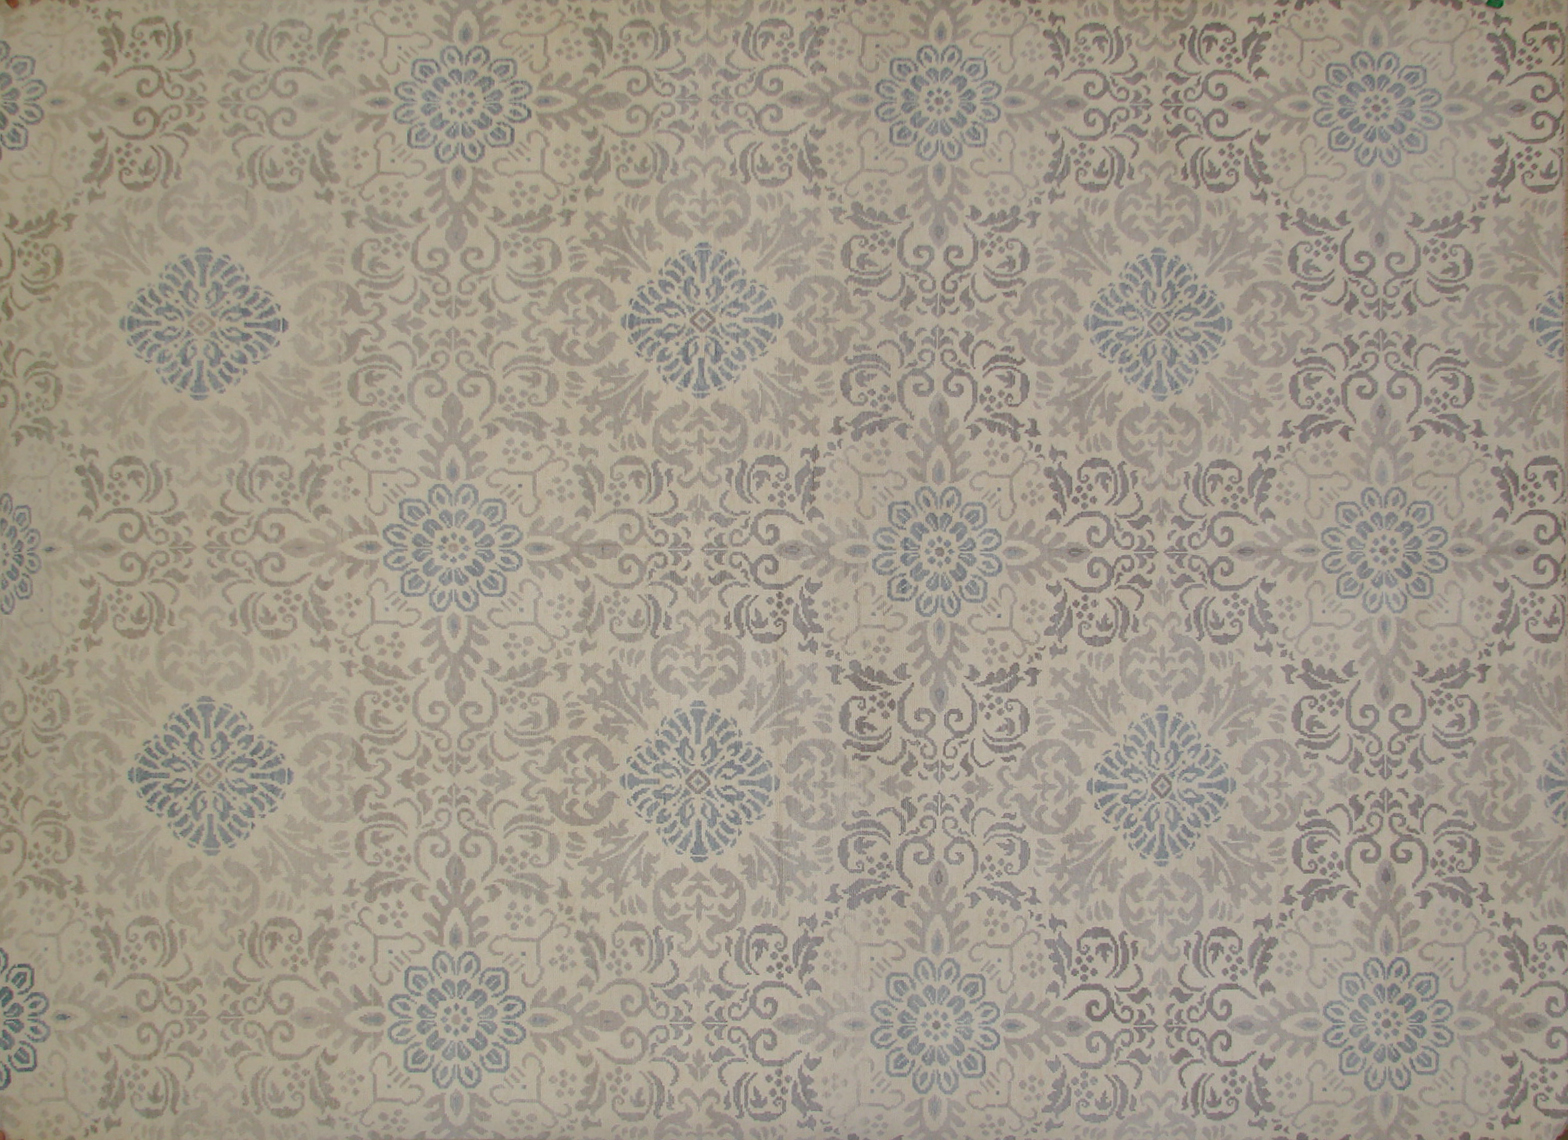 9x12 Oushak Hand Knotted Wool Area Rug - MR19704